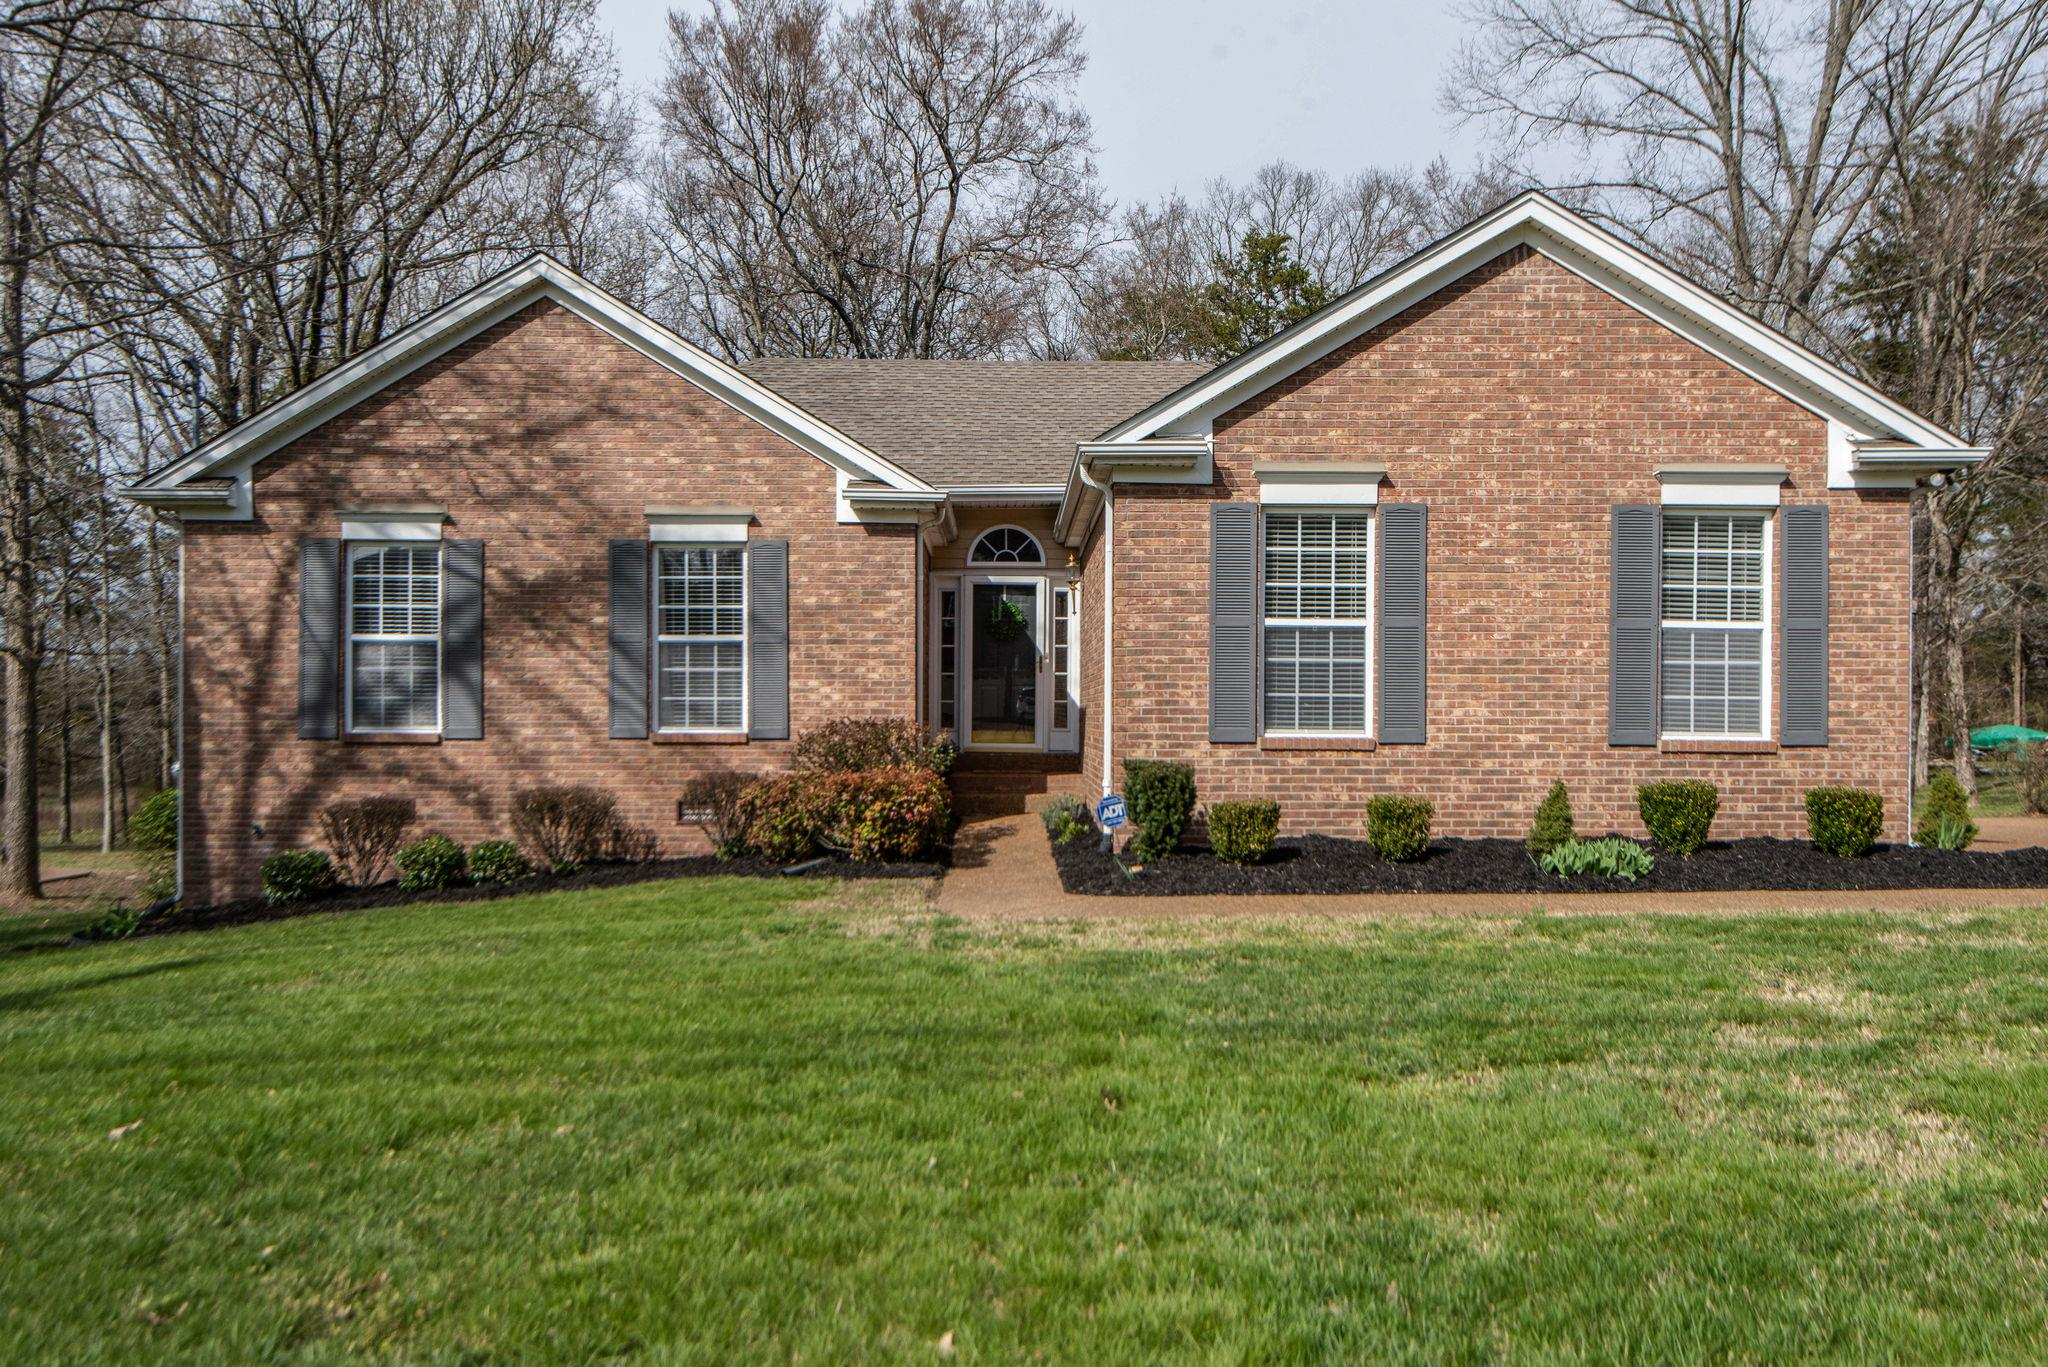 215 Norfolk Ln, Nolensville in Williamson County County, TN 37135 Home for Sale